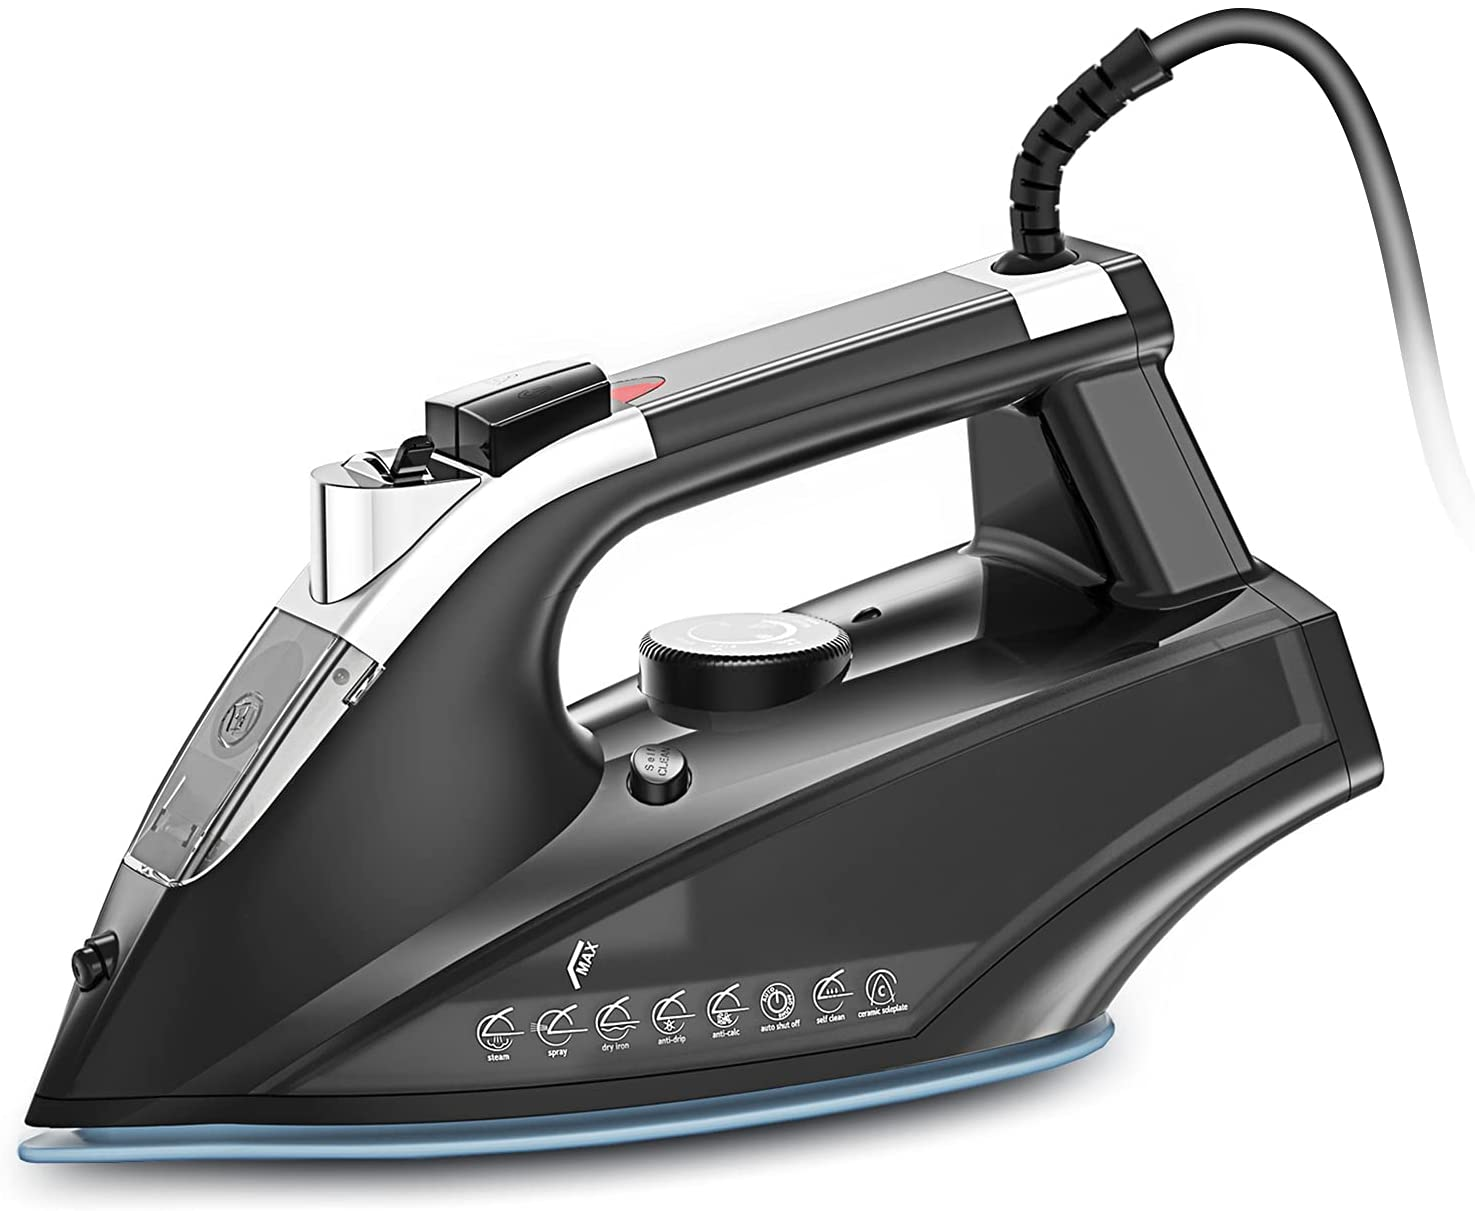 Save 10% on Steam Iron, 1800W Portable Steam-Dry Iron for Clothes